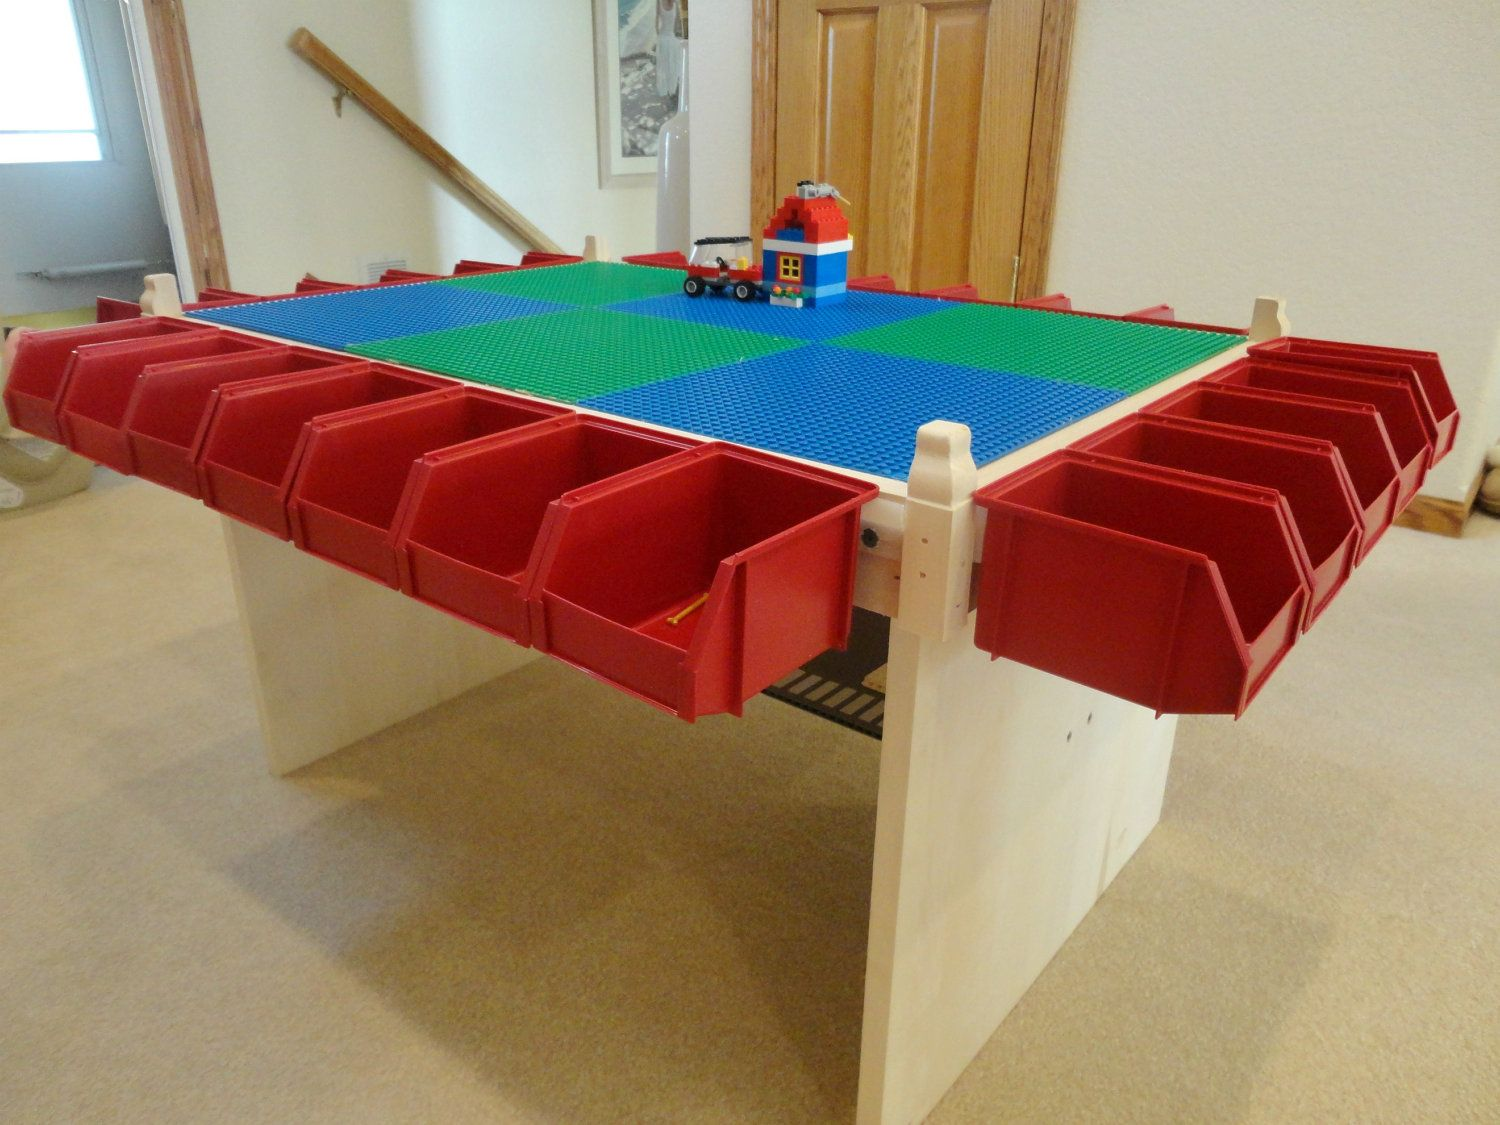 Childrens Play Table Lego Table Kids Play Table Lots Of Storage Boys Toy